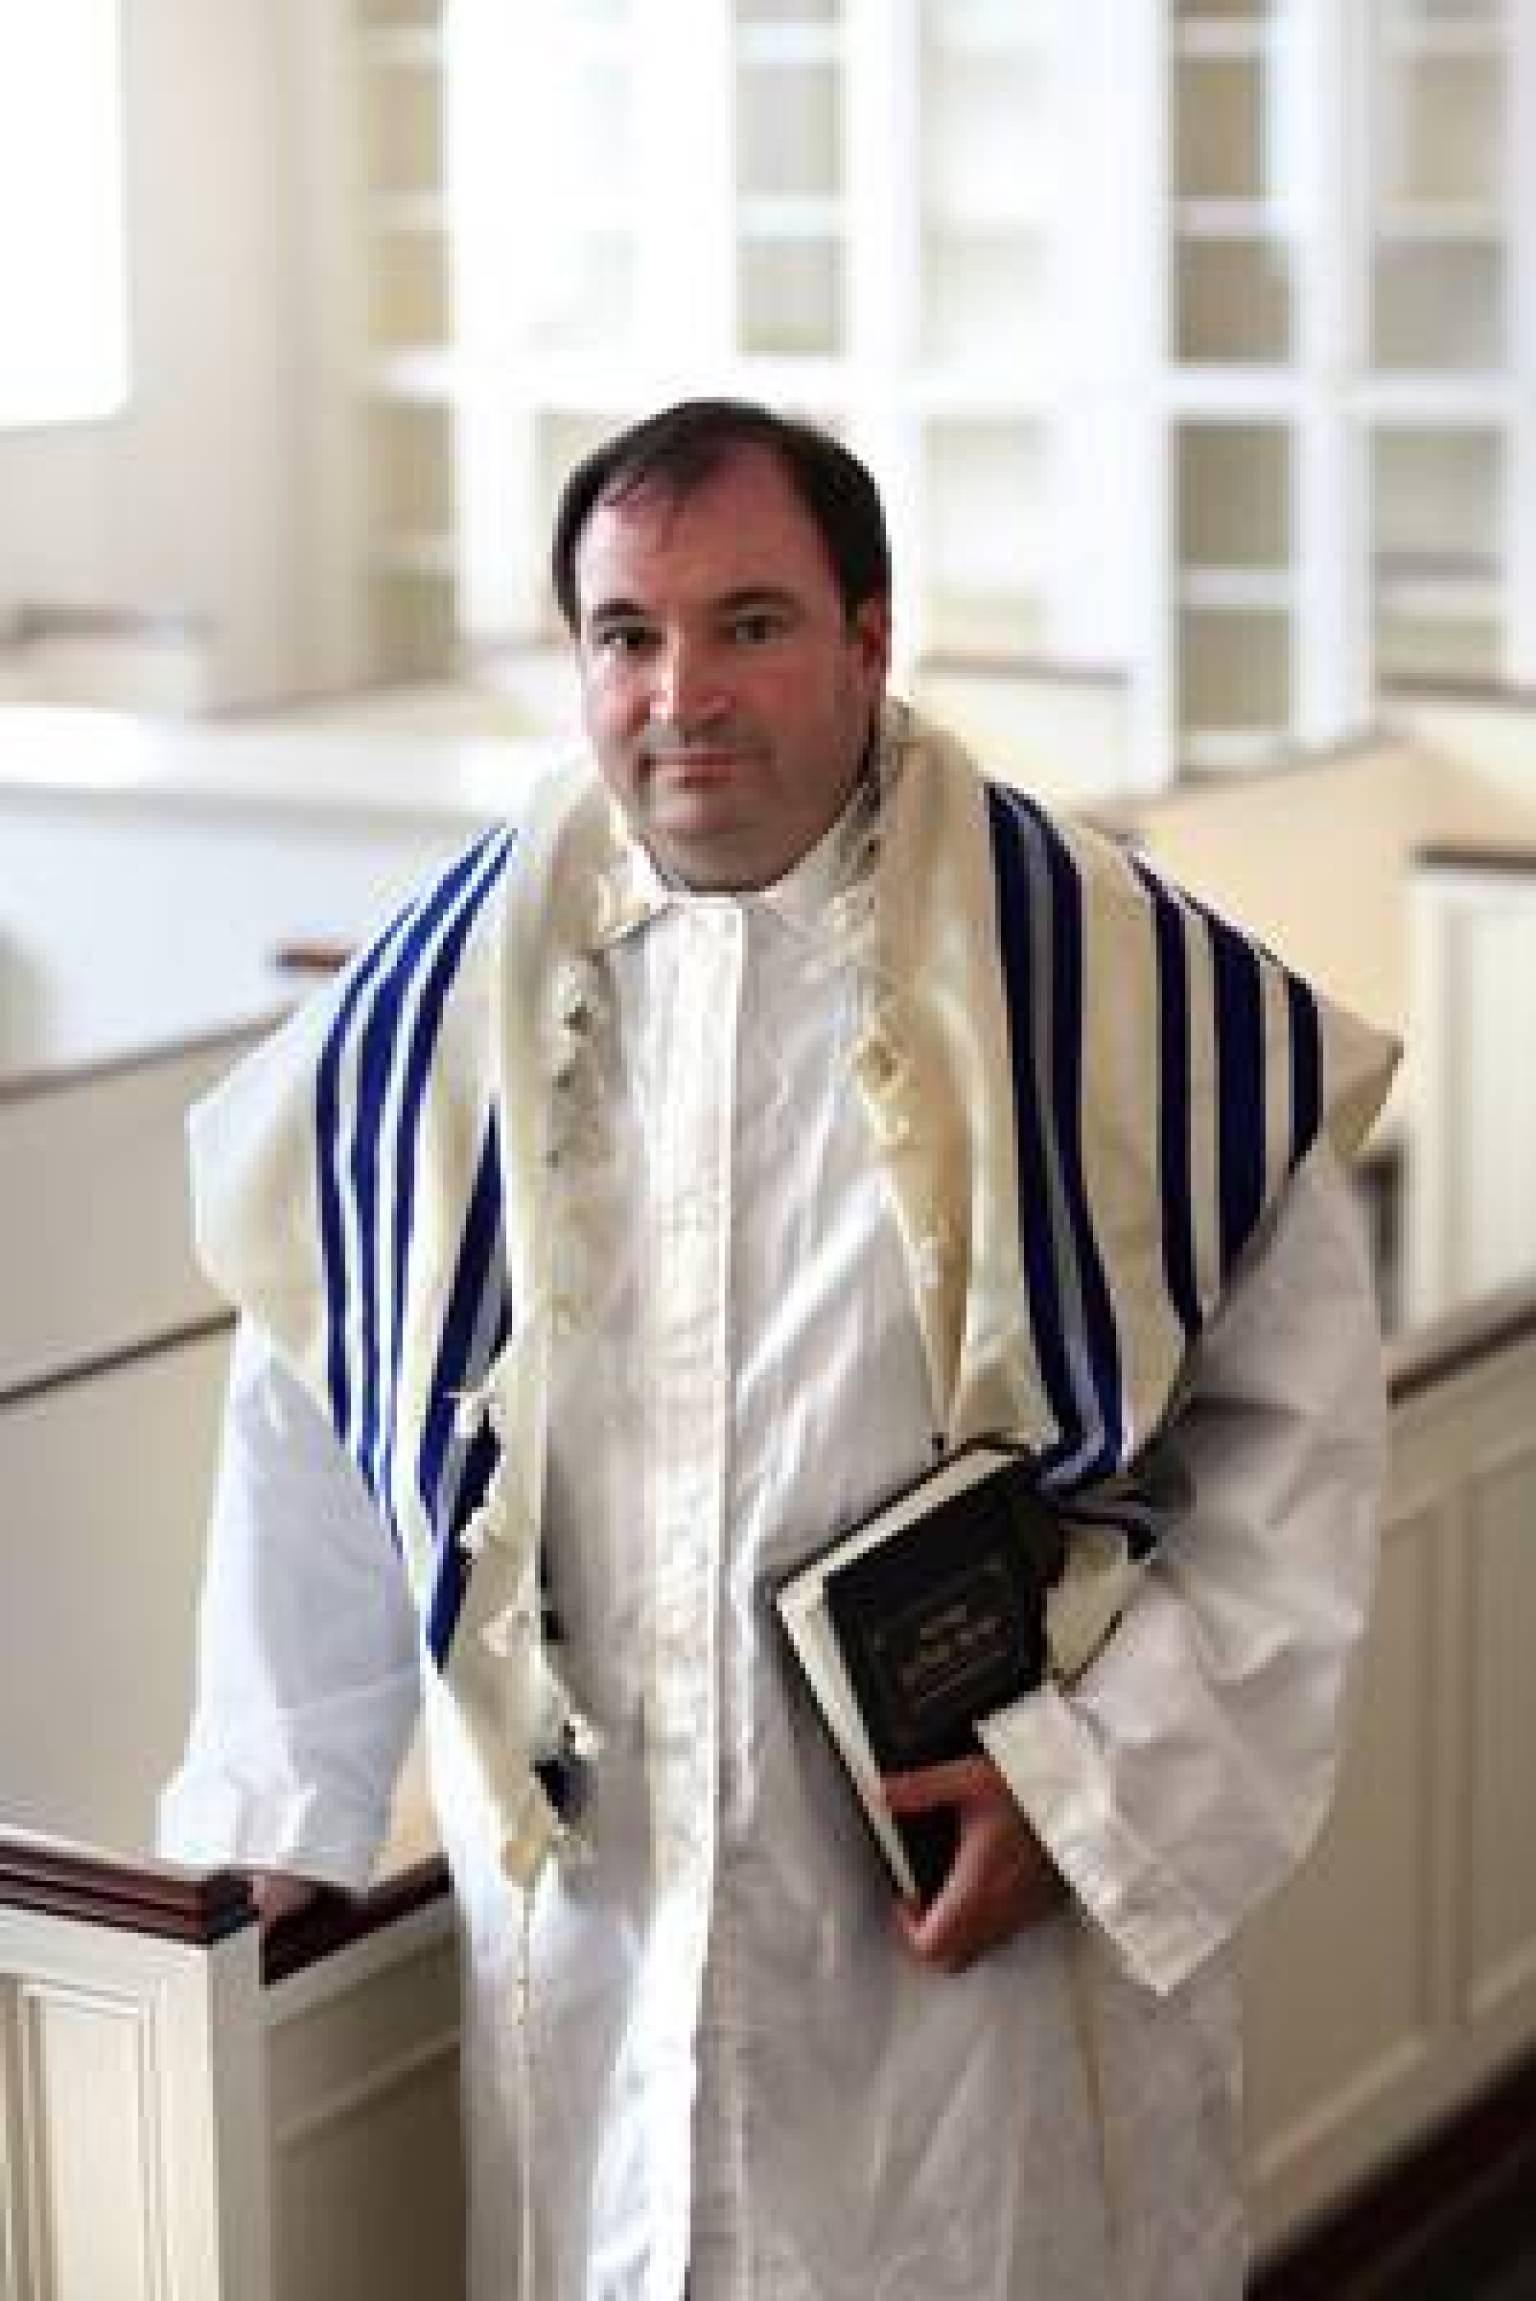 White On Yom Kippur Represents Atonement And Purity During ...